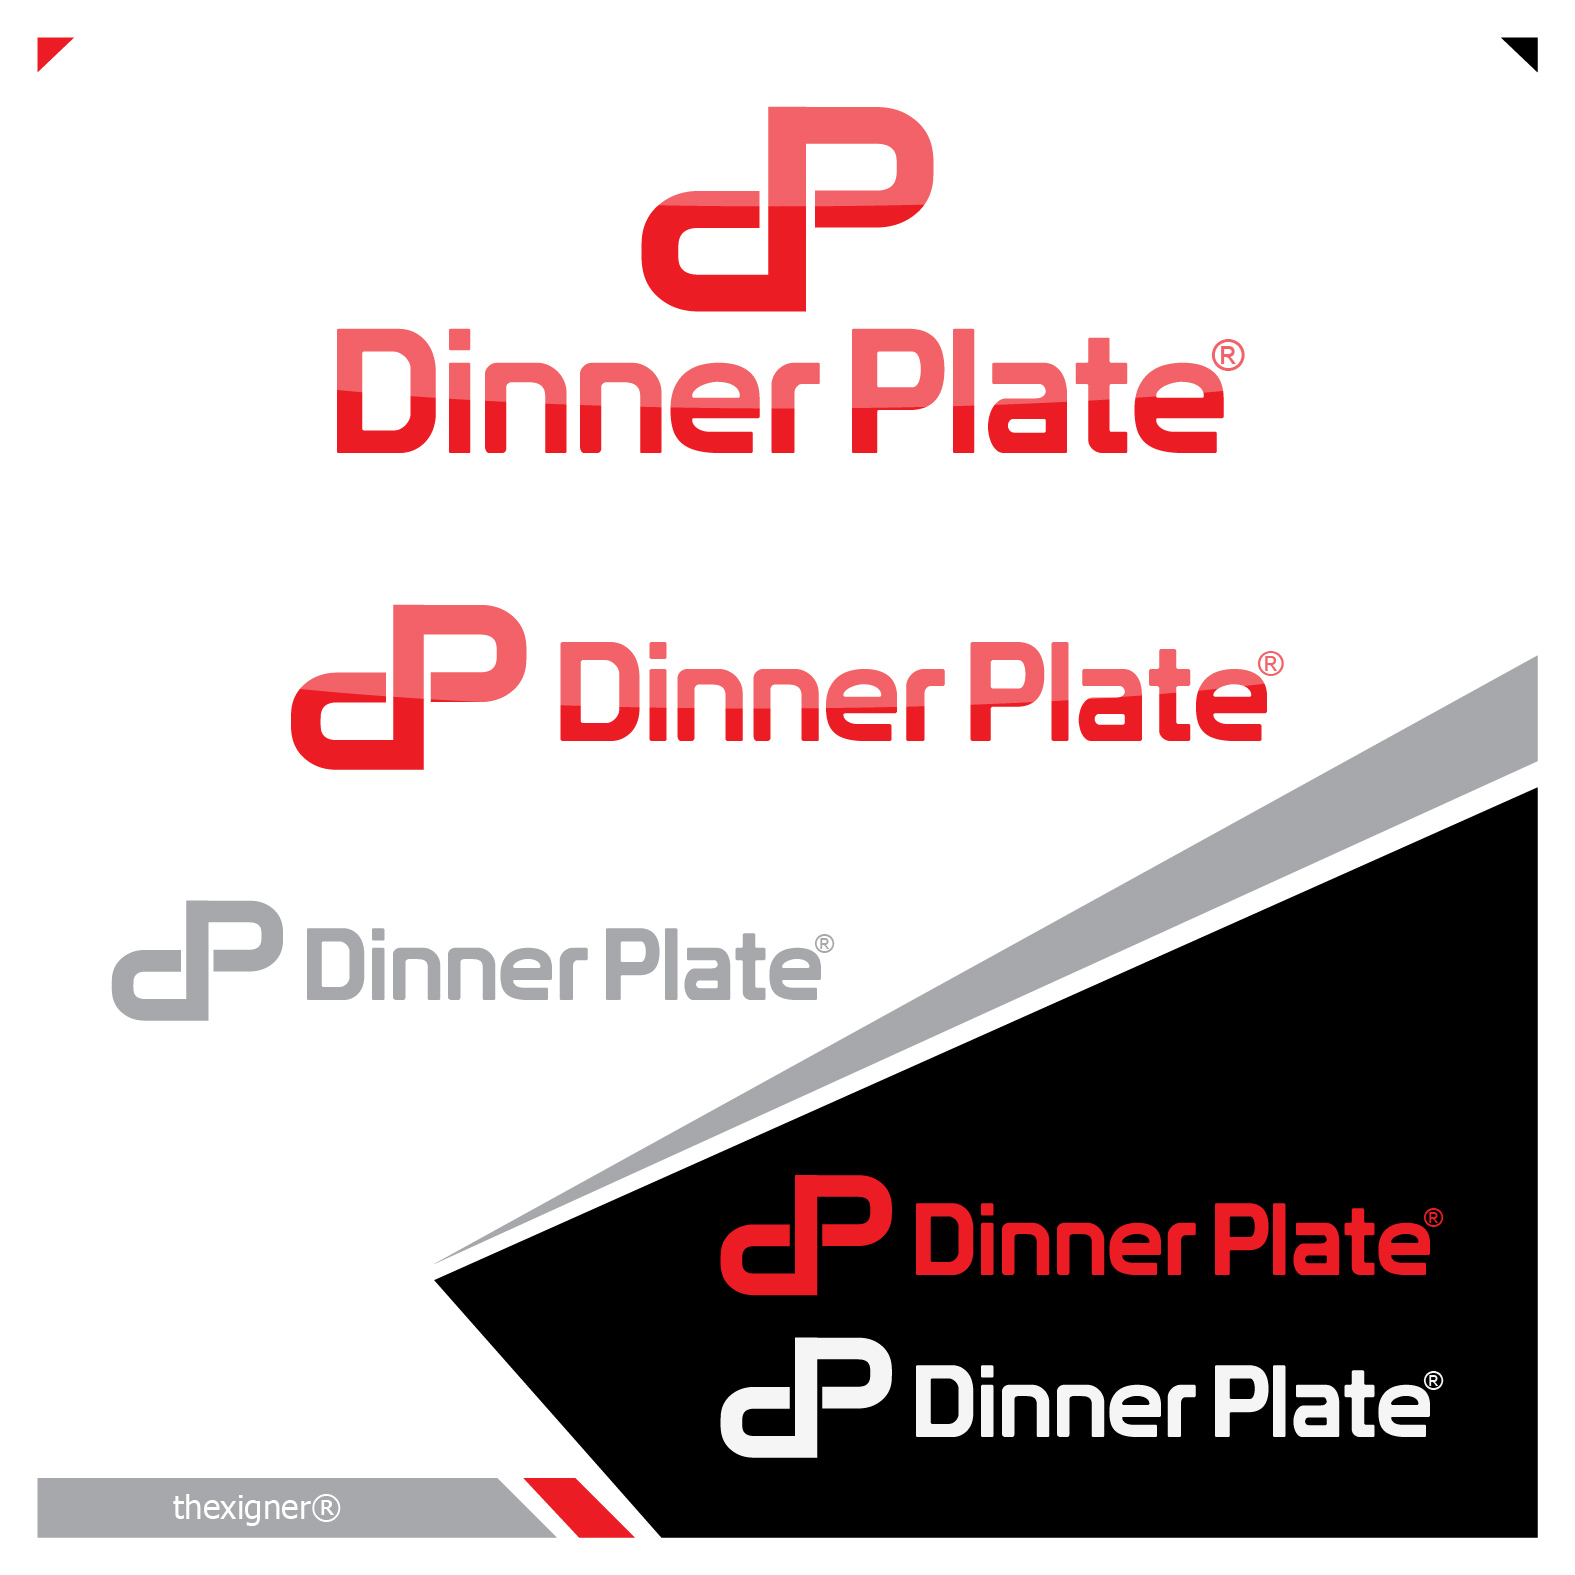 Logo Design by lagalag - Entry No. 25 in the Logo Design Contest Imaginative Logo Design for Dinner Plate.